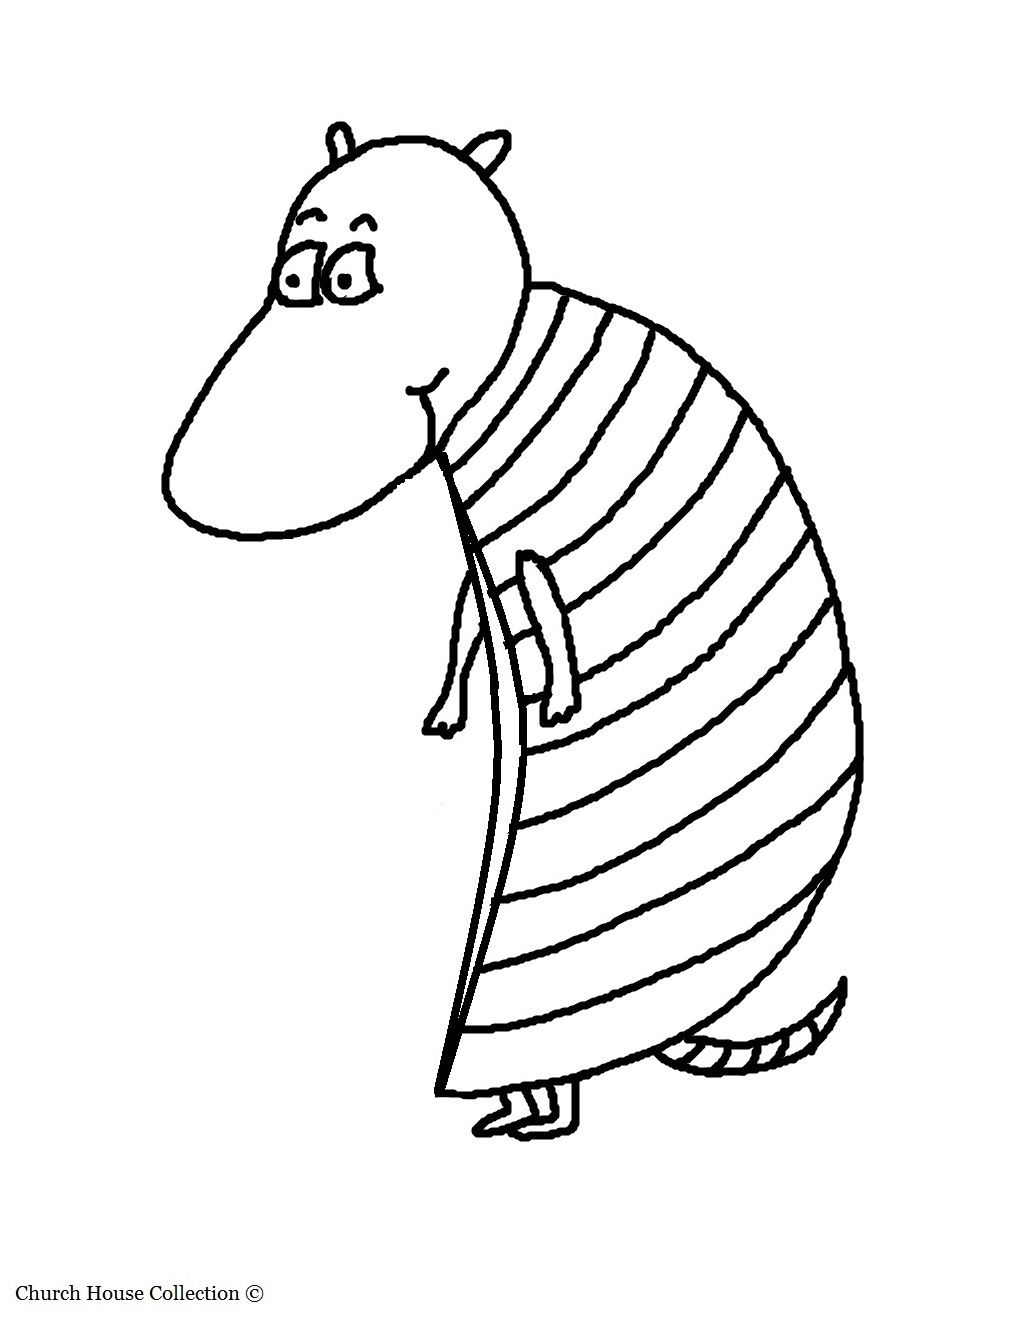 Armadillo Coloring Page. Animal Coloring Pages For Kids. Without Words